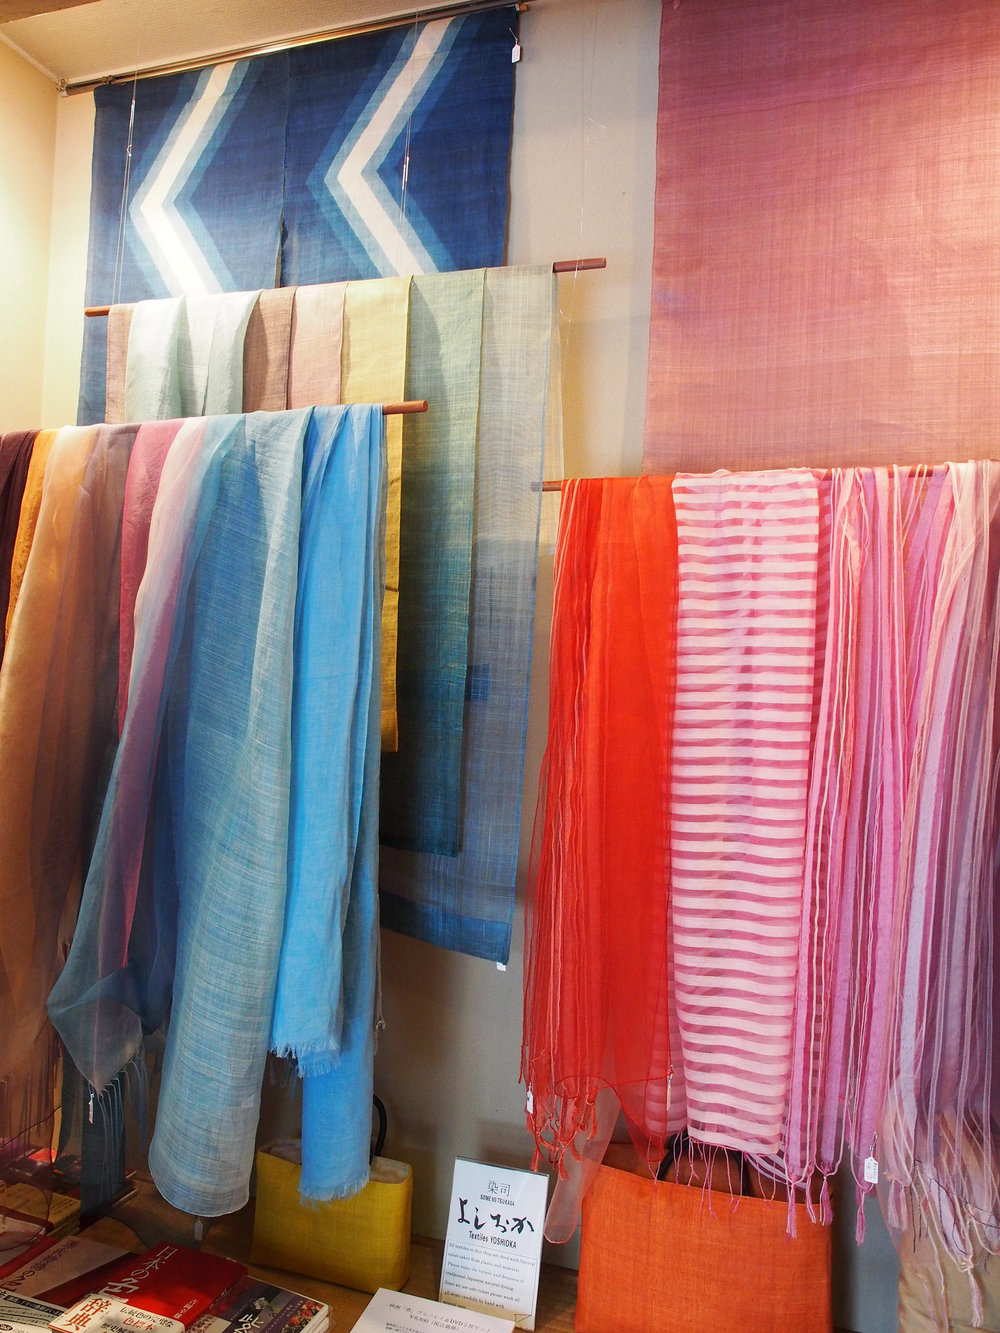 Some of the finished products that Yoshioka has created using his dyes. He makes a variety of unique, modern items (such as scarves and bags) as well as traditional textiles that are used in temples and shrines. ©TOKI